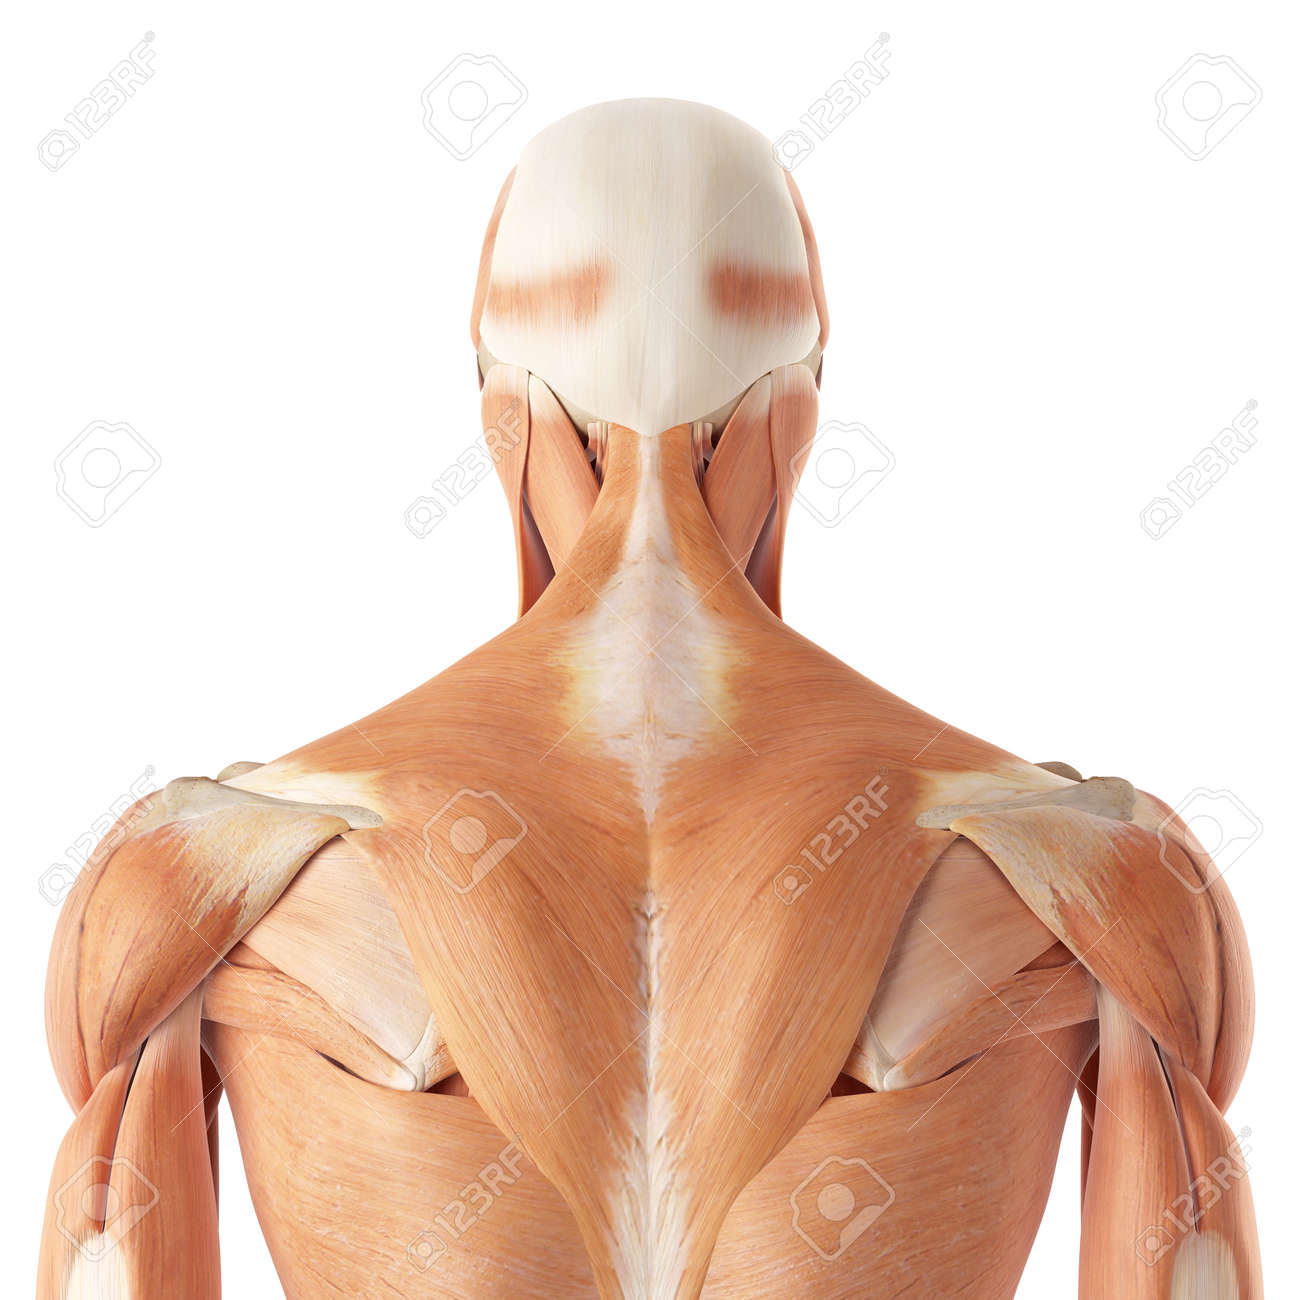 Medical Accurate Illustration Of The Upper Back Muscles Stock Photo